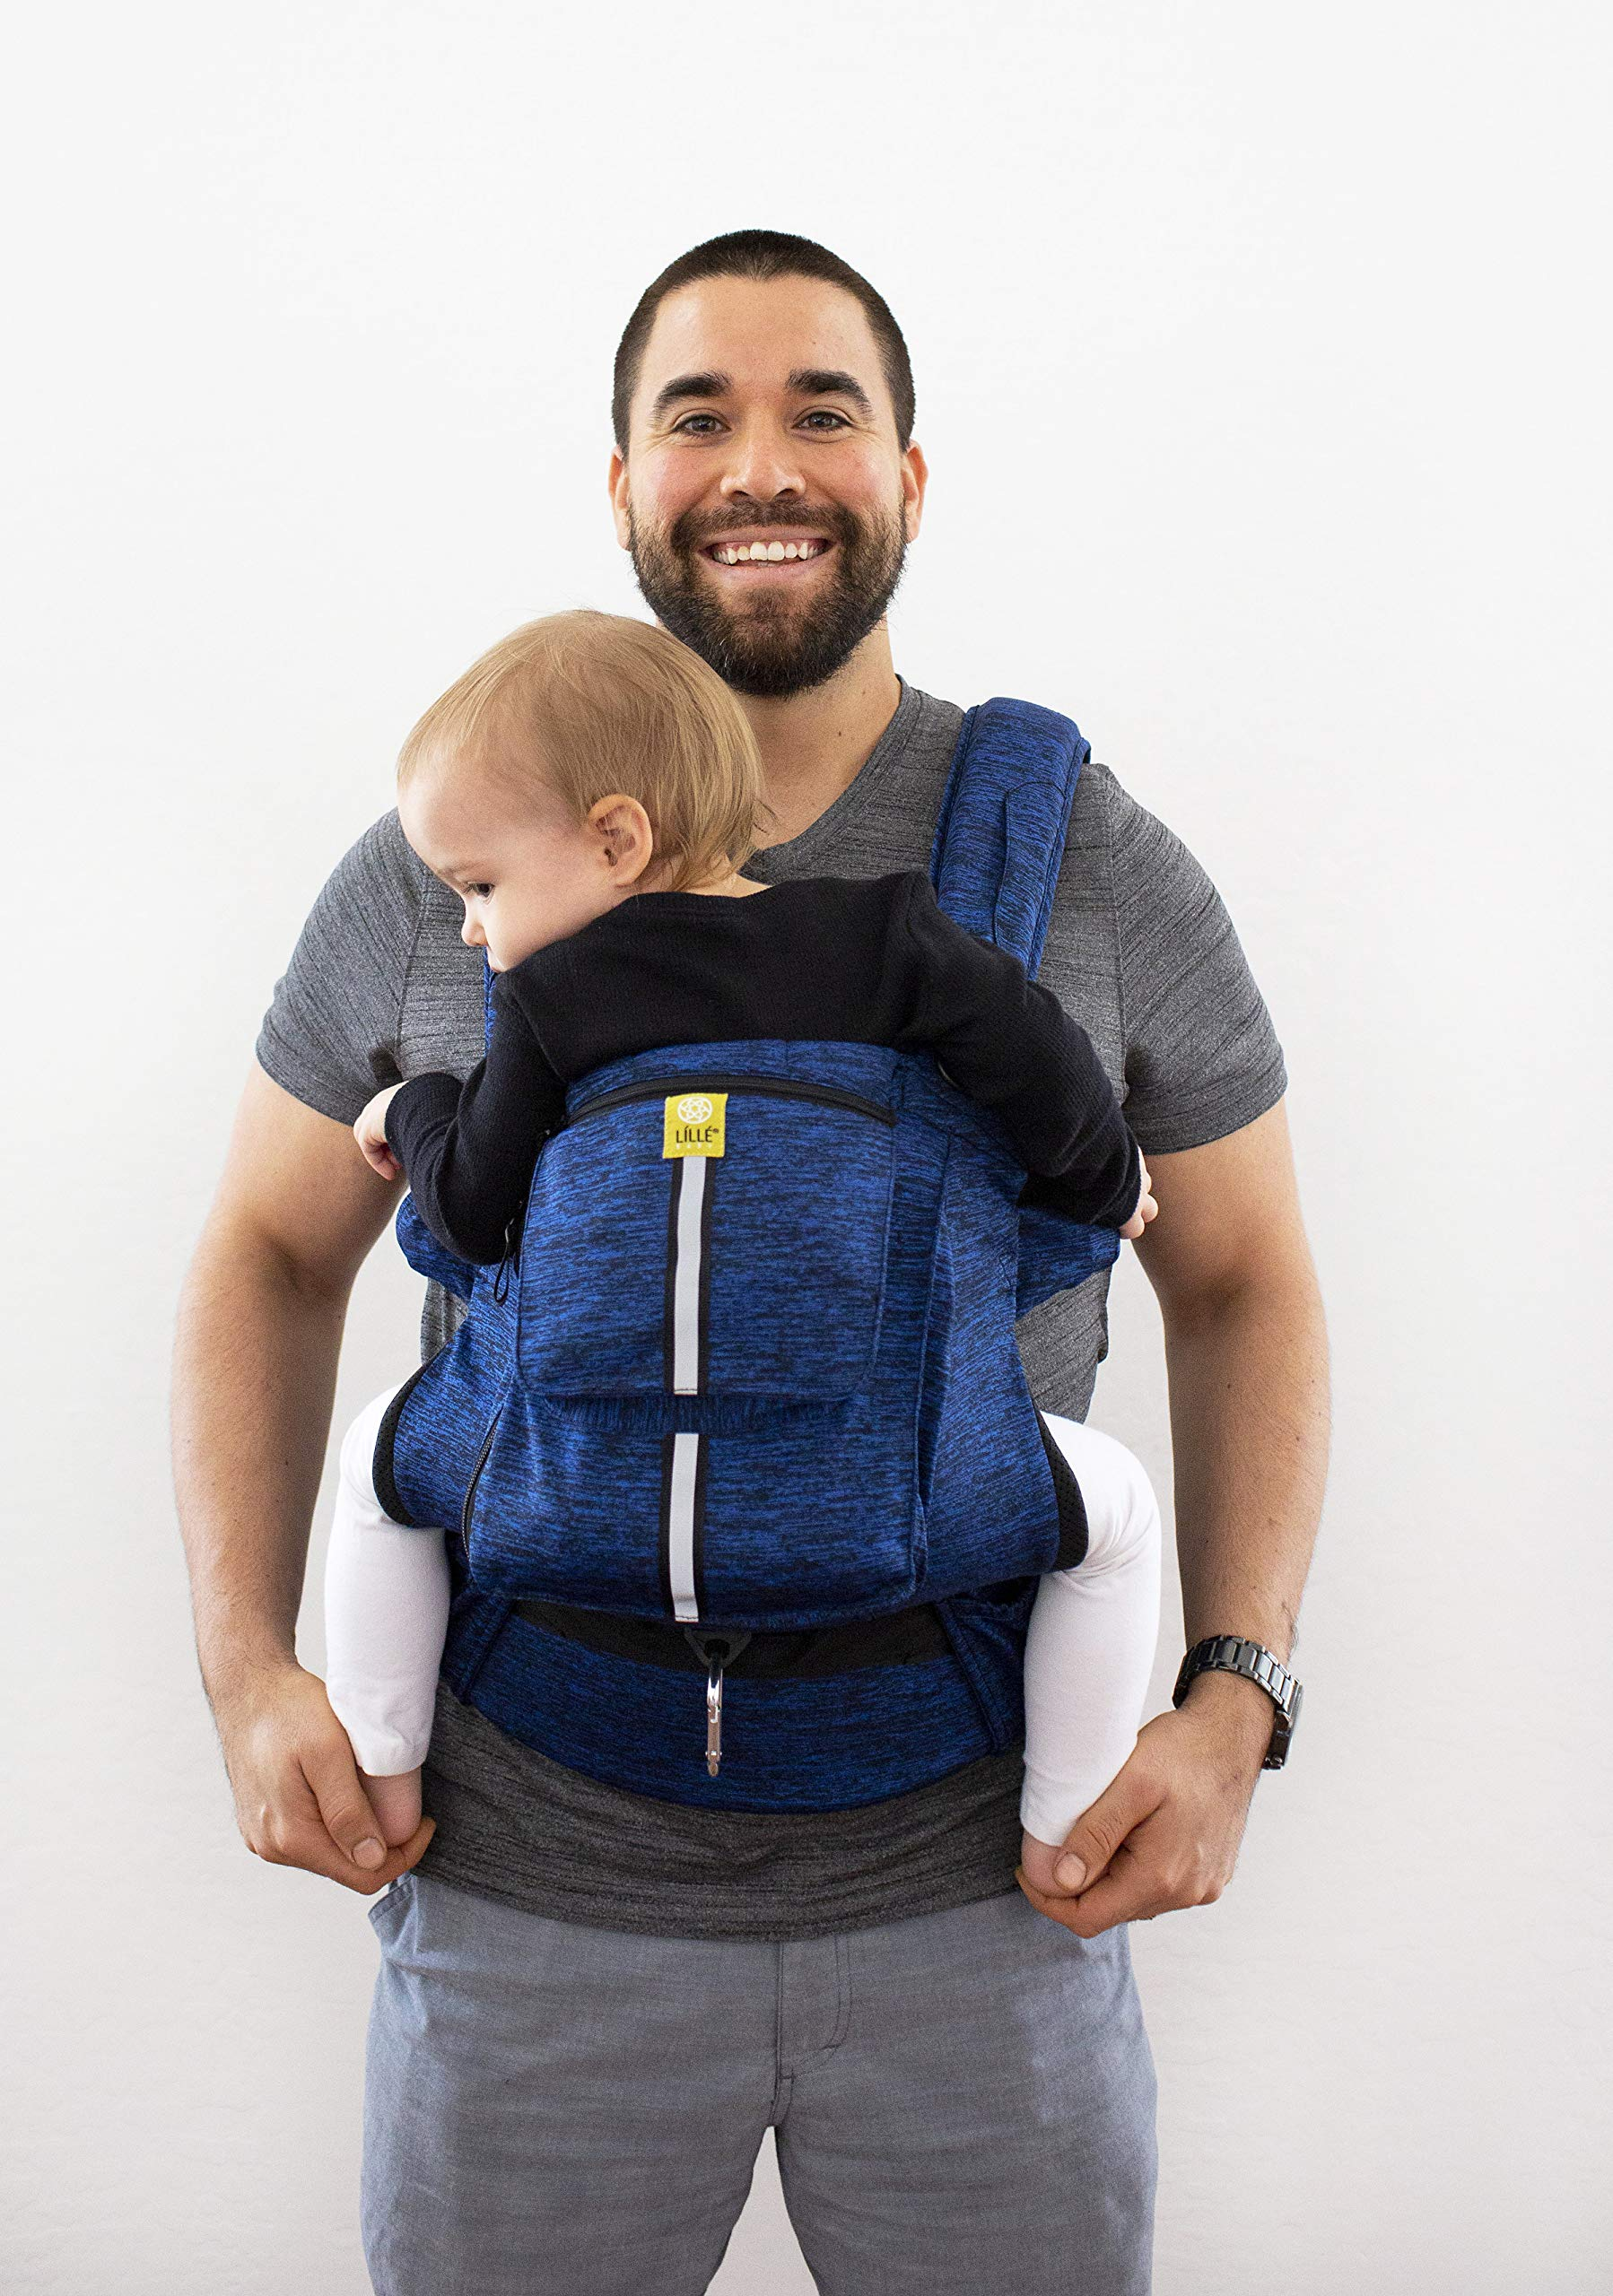 LÍLLÉbaby Complete Pursuit Pro 6-in-1 Baby Carrier Heathered, Sapphire Lillebaby Designed specifically for parents on the go, our pusuit series combines the comfort and functionality of our 6 in 1 design with adventure-ready features to help you show your little one the world Suitable from birth to 4 years, the active pro has a perfect combination of responsive fabric, advanced ergonomic fit, and innovative safety upgrades make it the ideal tool for all-weather exploring Unique líllébaby lumbar support for the wearer, with wide padded waist belt and shoulder straps 1